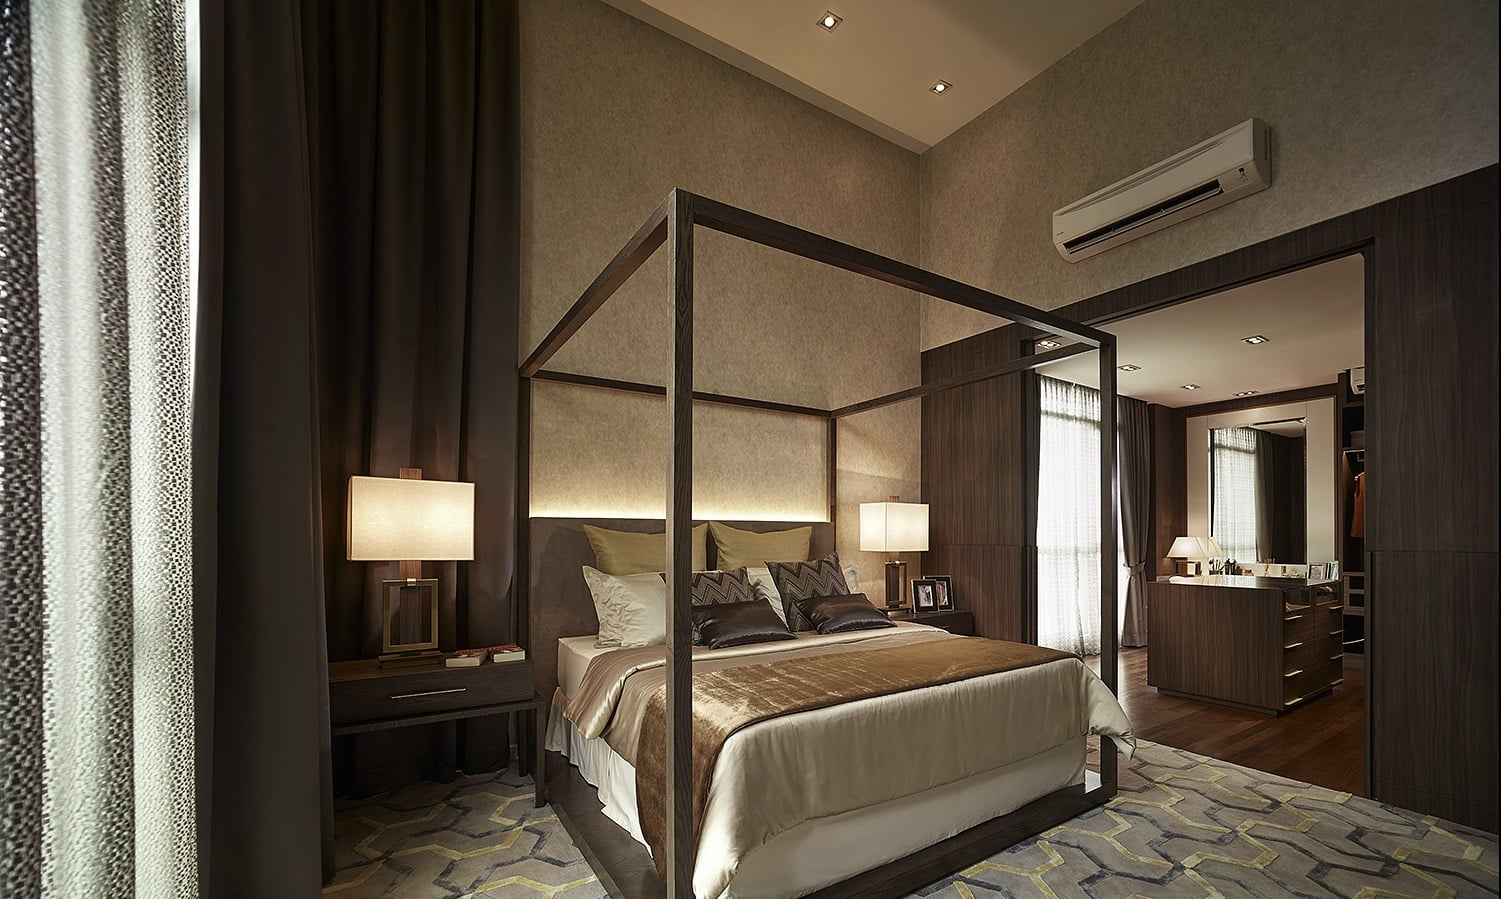 Soft lighting, a four poster bed combined with an earthy colour scheme define the look of the master bedroom.